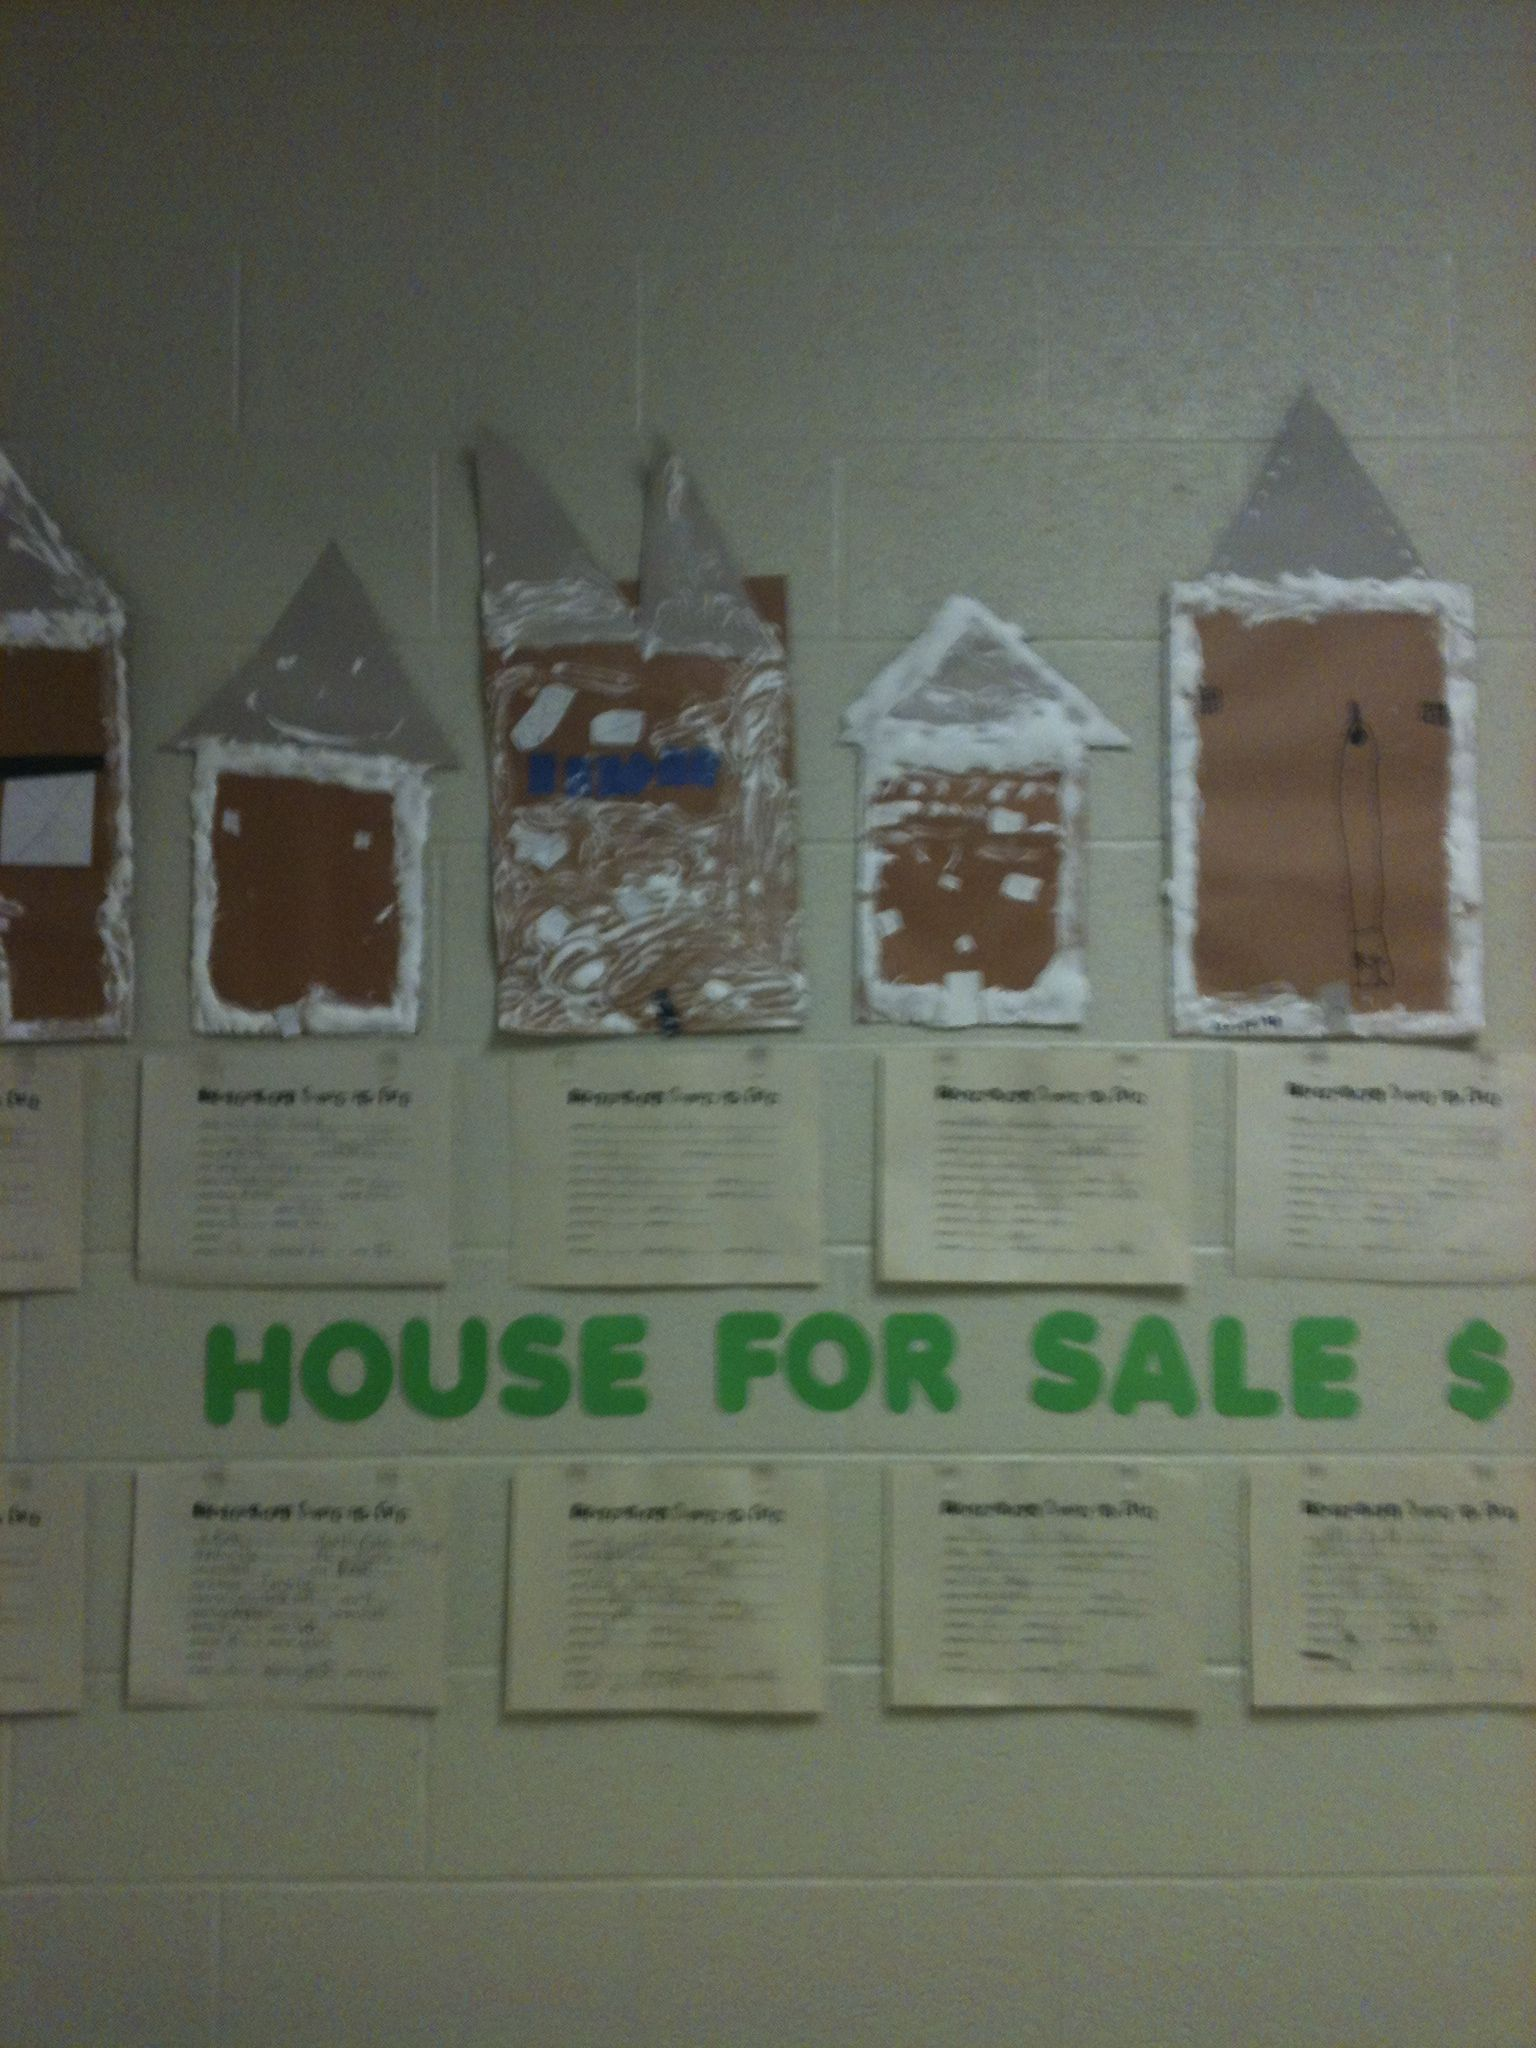 Gingerbread House For Sale 1st Graders Completed Their